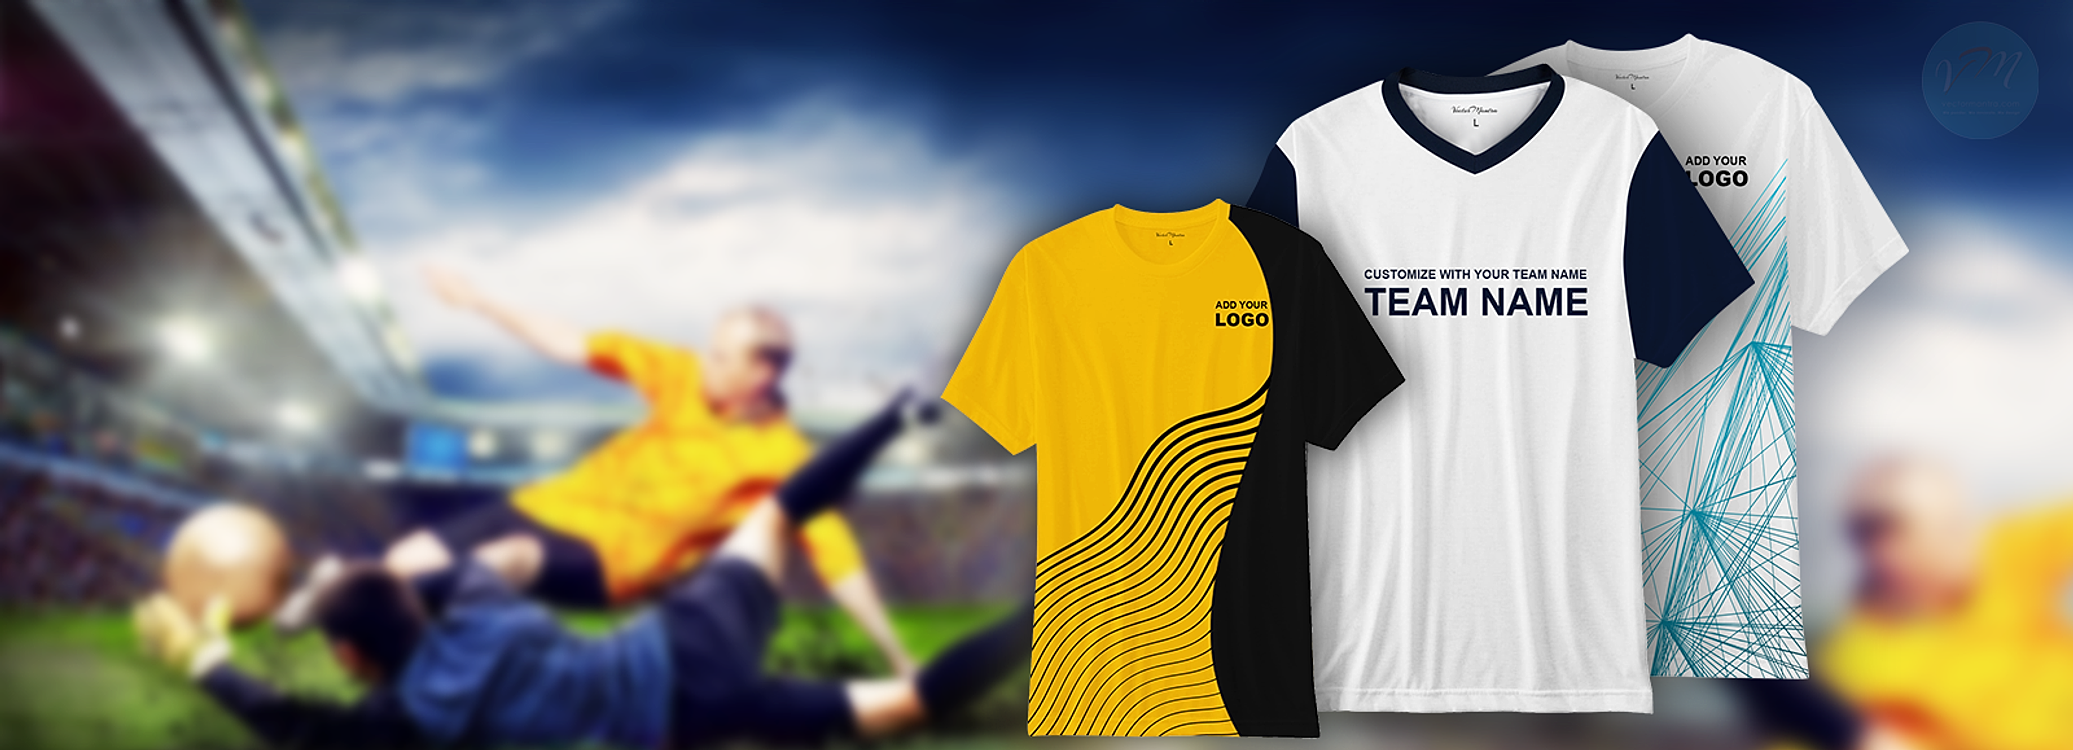 Design your own t shirt bangalore -  Customized Sports Jersey T Shirts